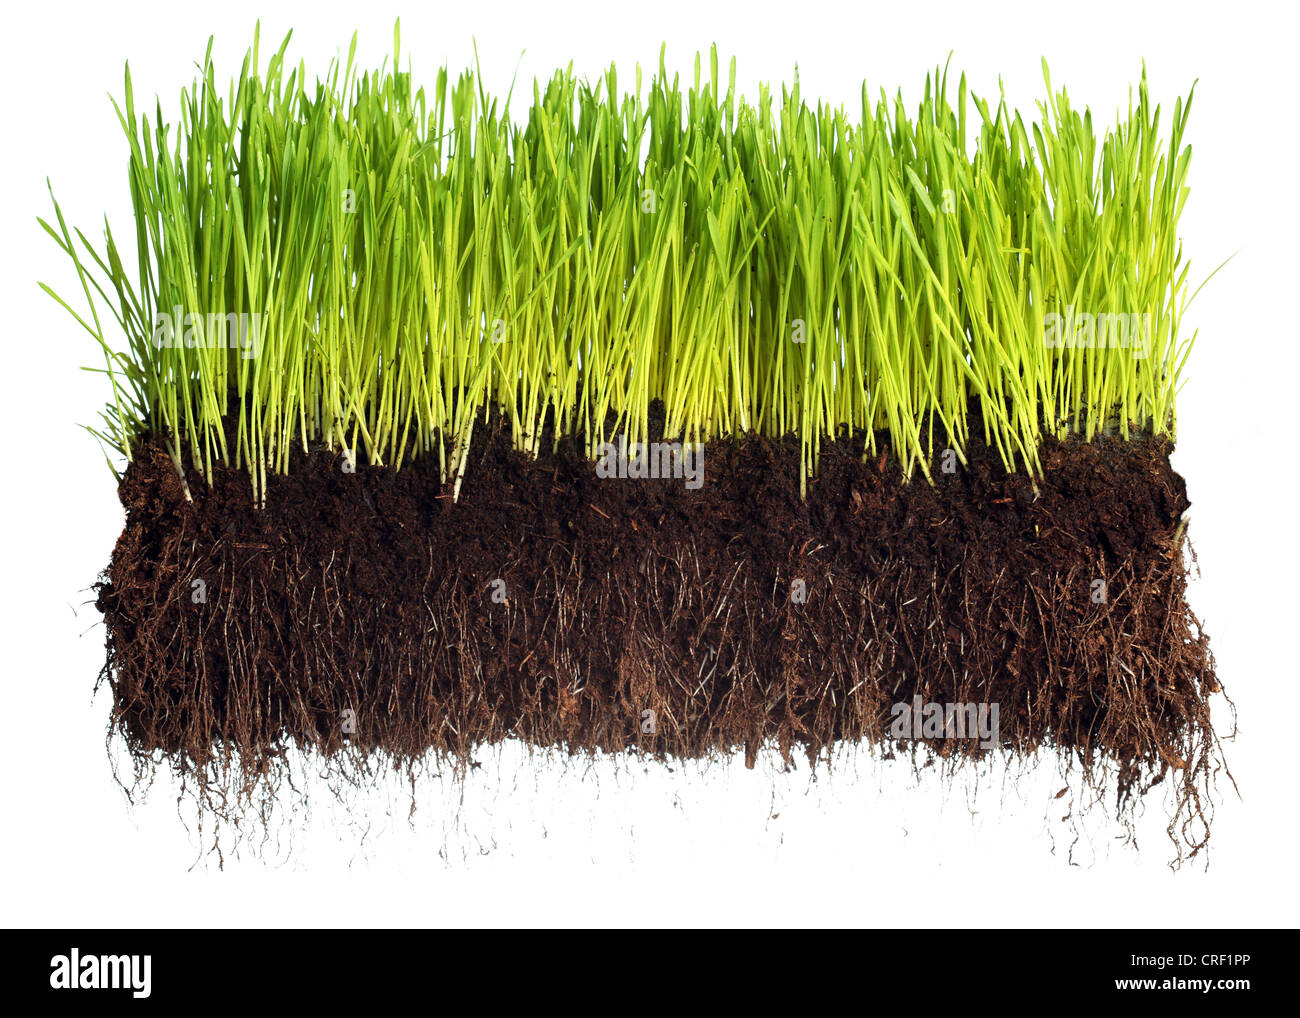 Green grass showing roots - Stock Image